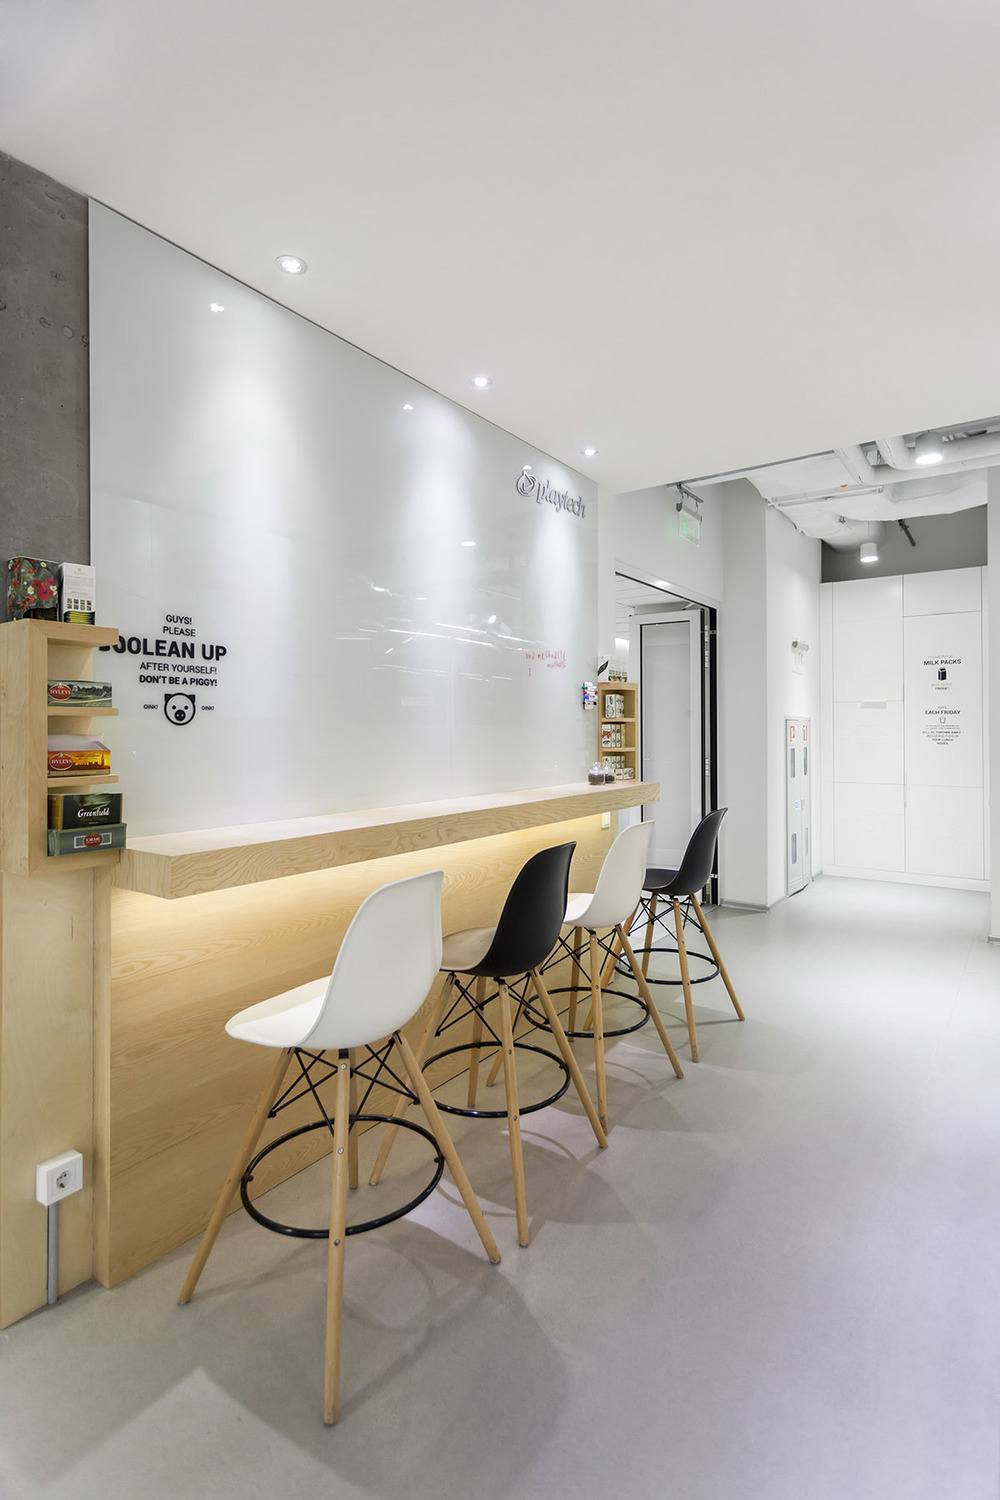 Kitchen Room Interior Design: A Look Inside Playtech's Stylish Kiev Office